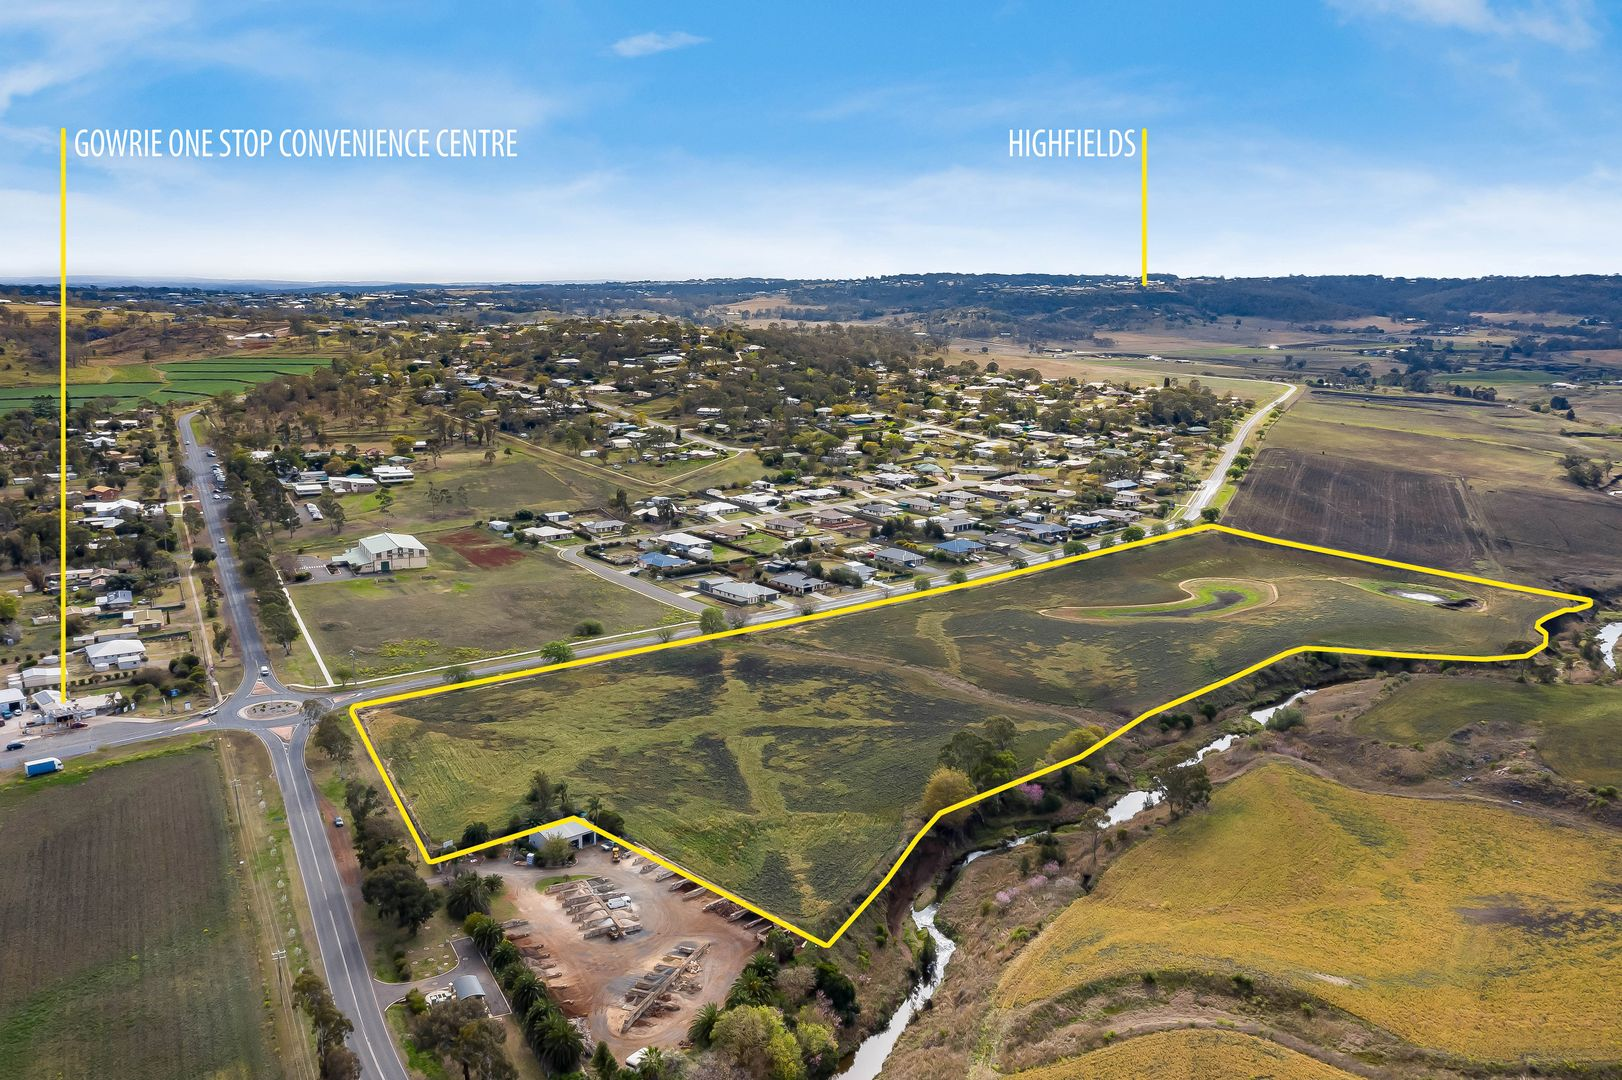 Lot 1 Cnr Old Homebush & Gowrie Birnam Roads, Gowrie Junction QLD 4352, Image 0